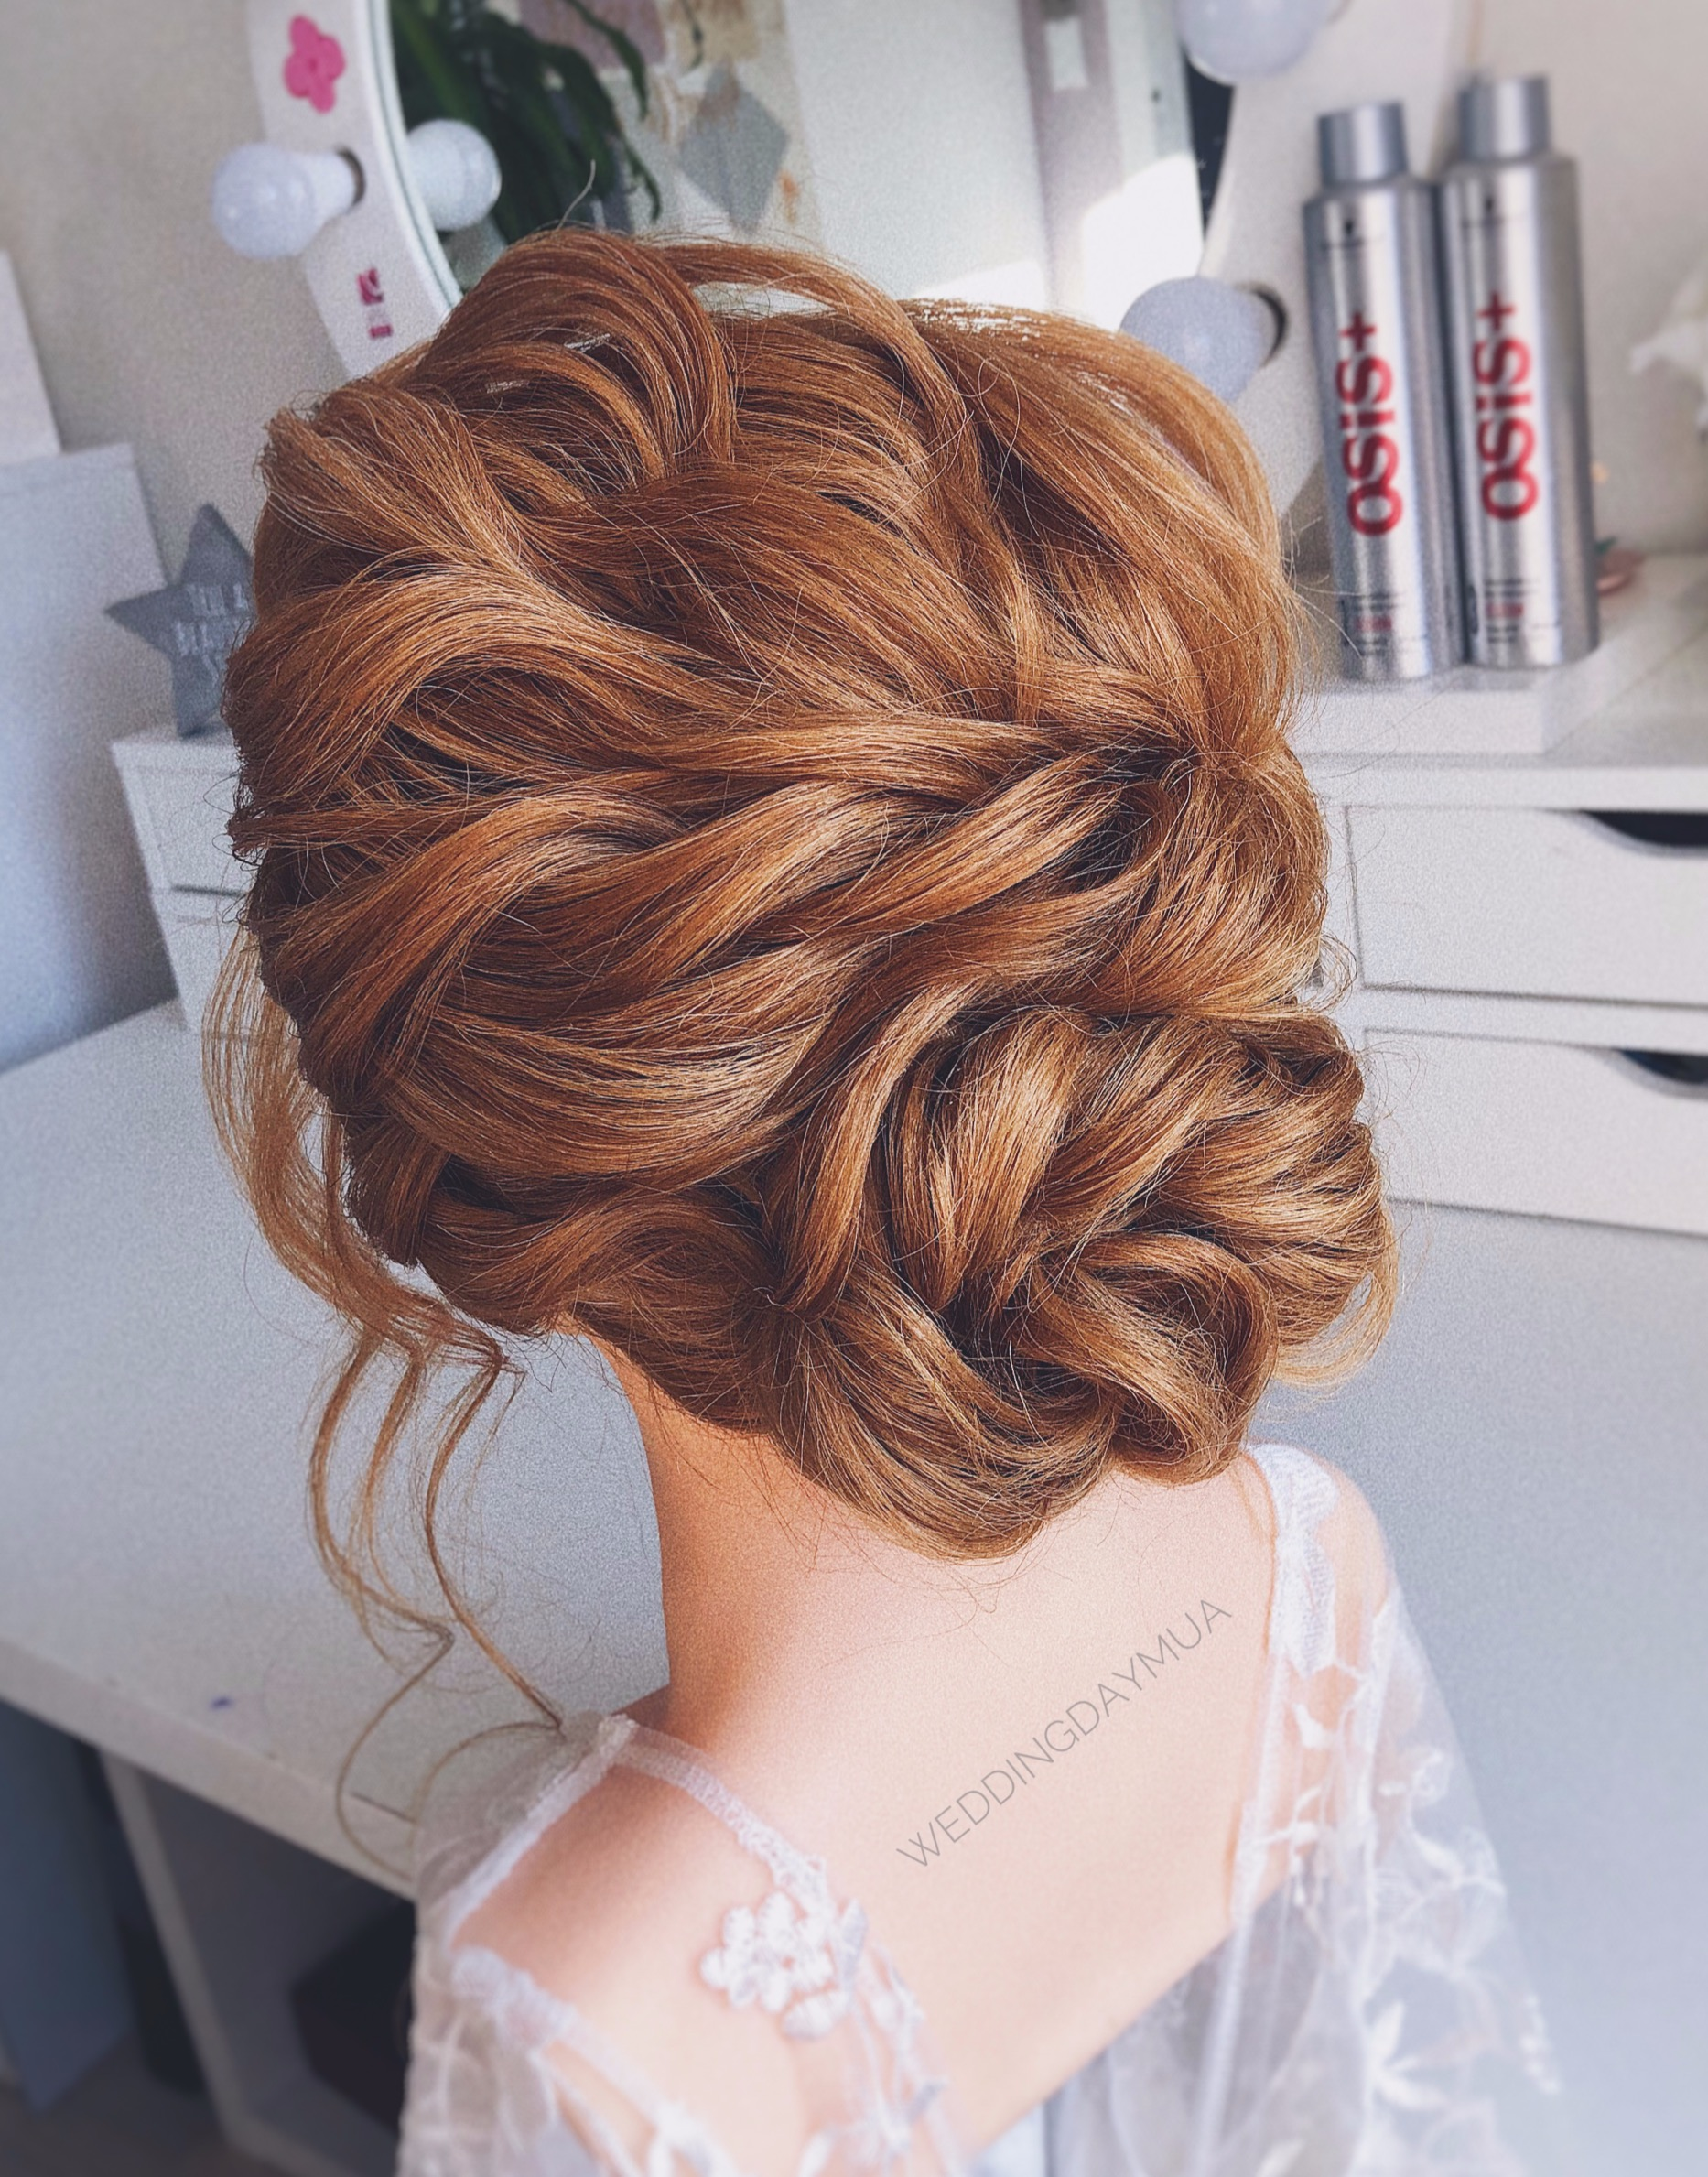 BEST BRIDAL HAIRSTYLIST